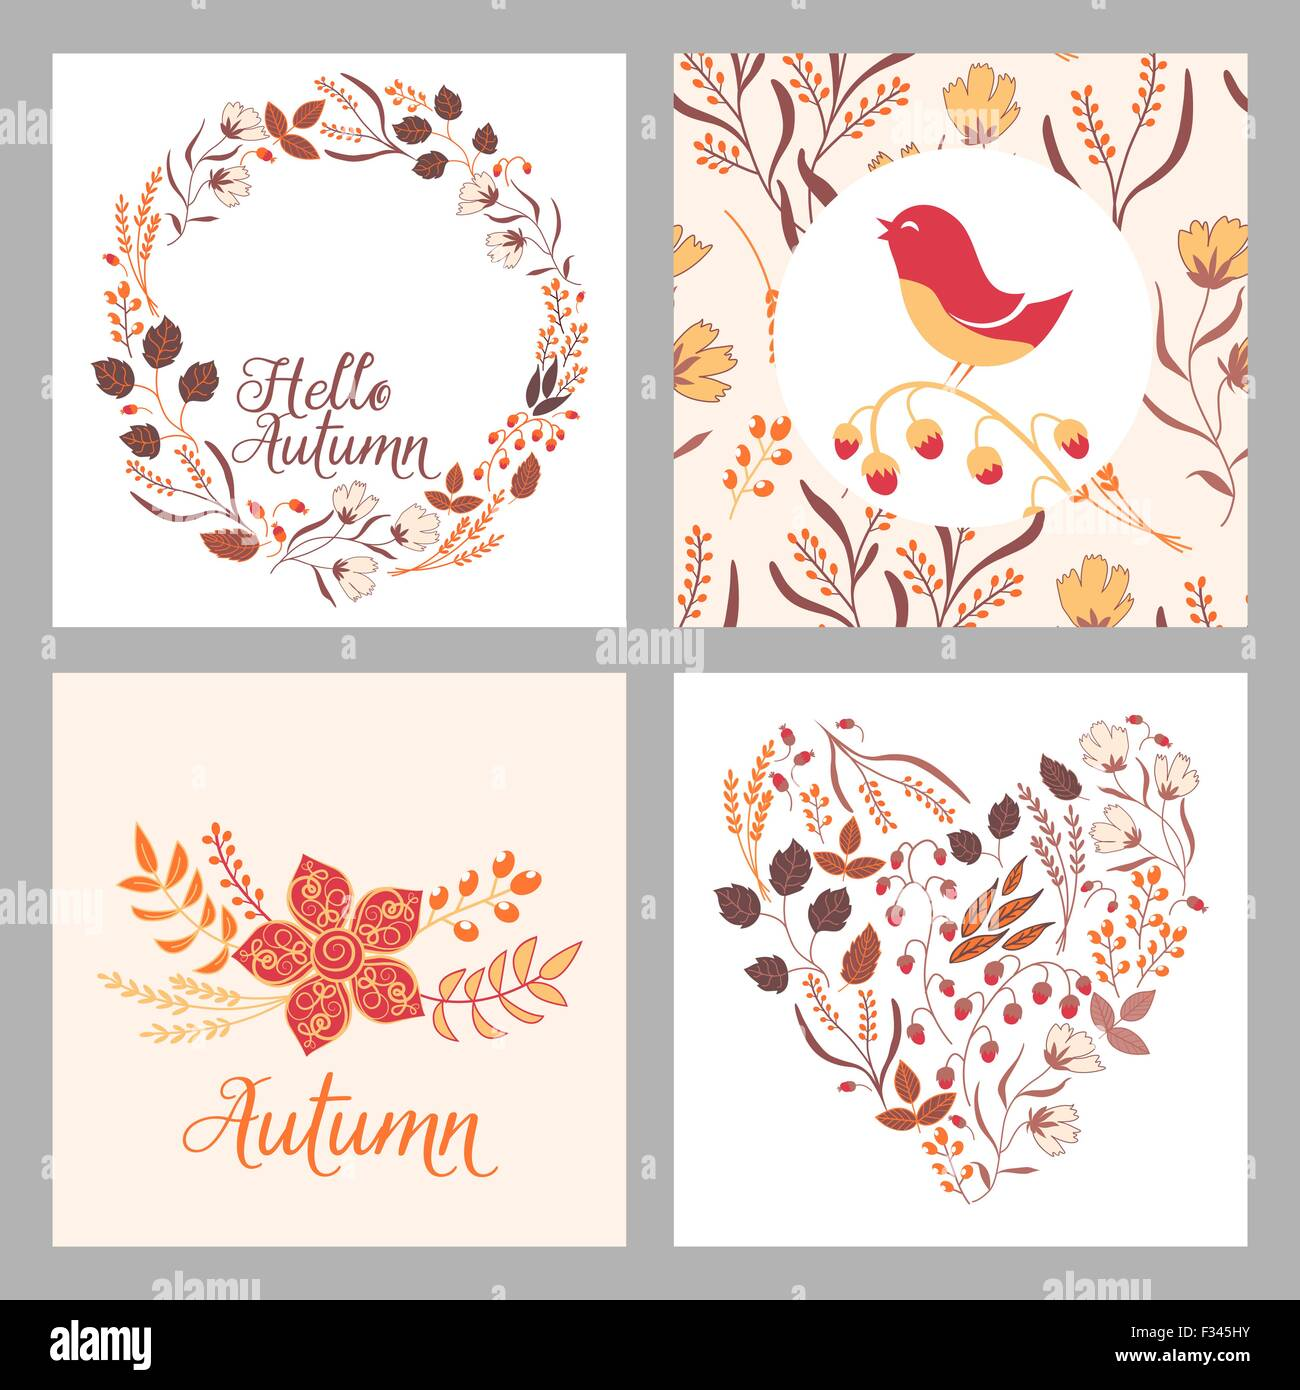 Autumn wedding graphic set with wreaths hearts invitation template autumn wedding graphic set with wreaths hearts invitation template in fall flower motives stopboris Images